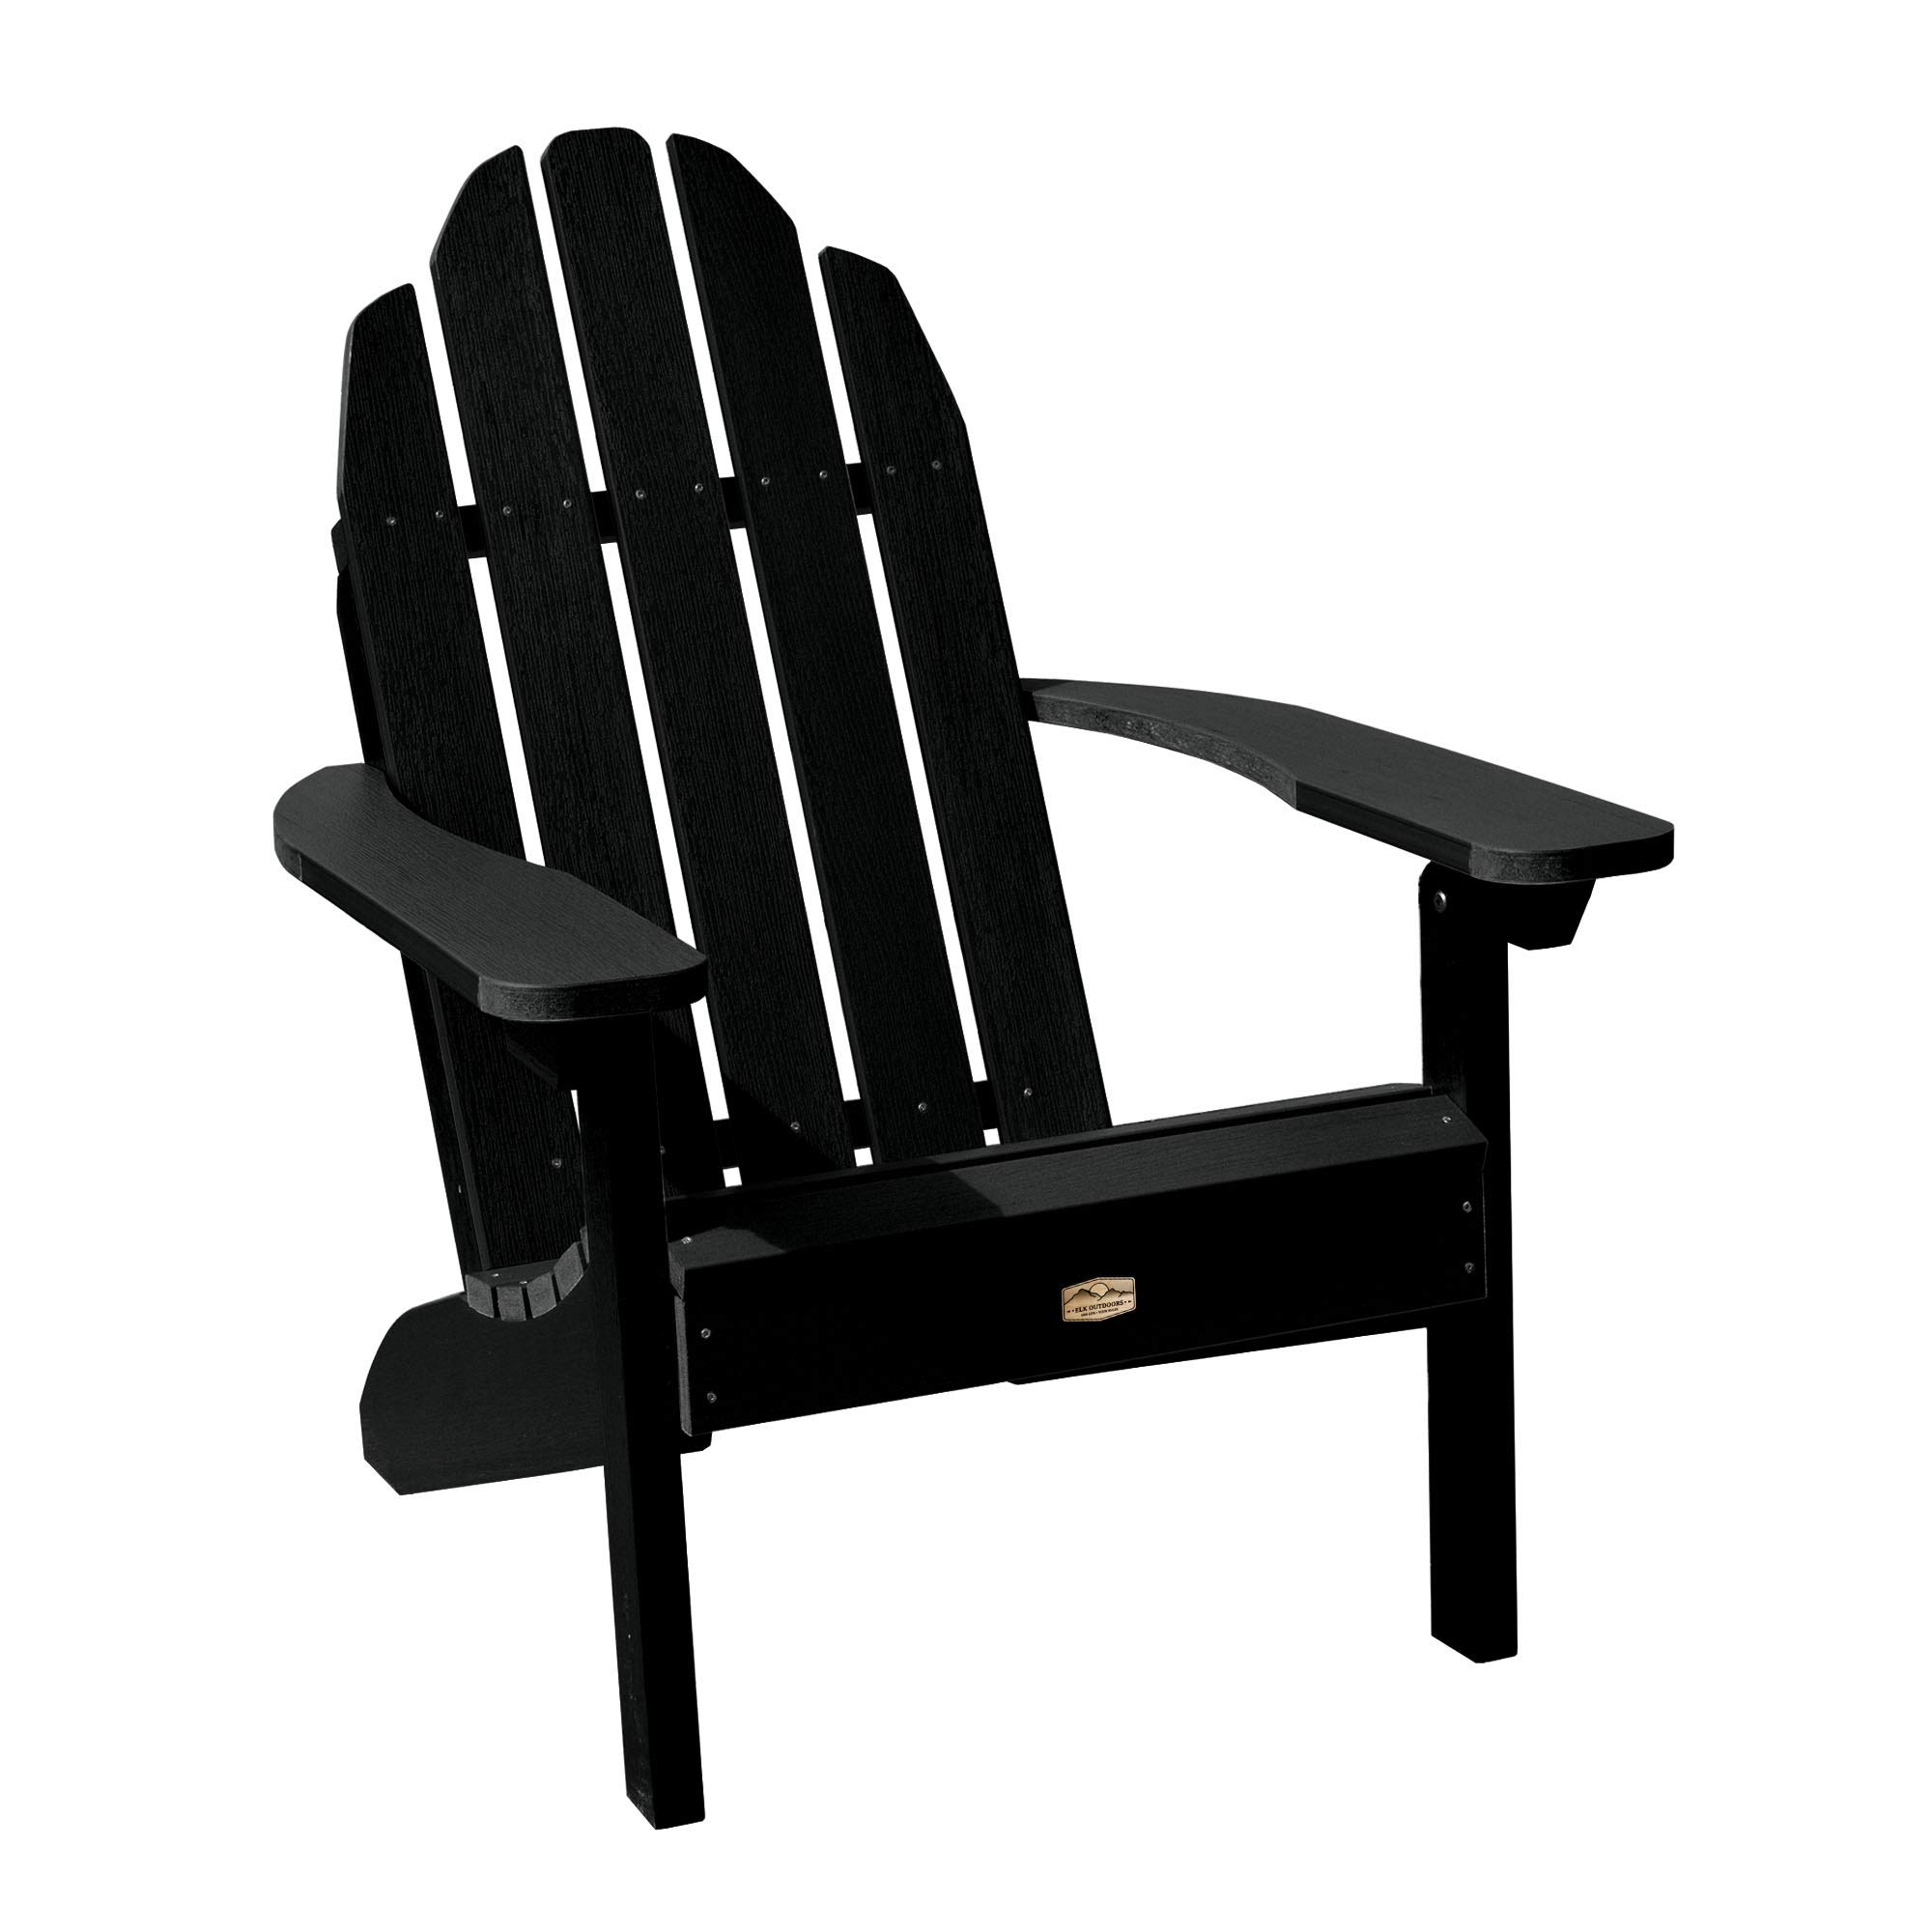 Elk Outdoors EO-CLAS1-ABY The Essential Adirondack Chair, Abyss by Elk Outdoors